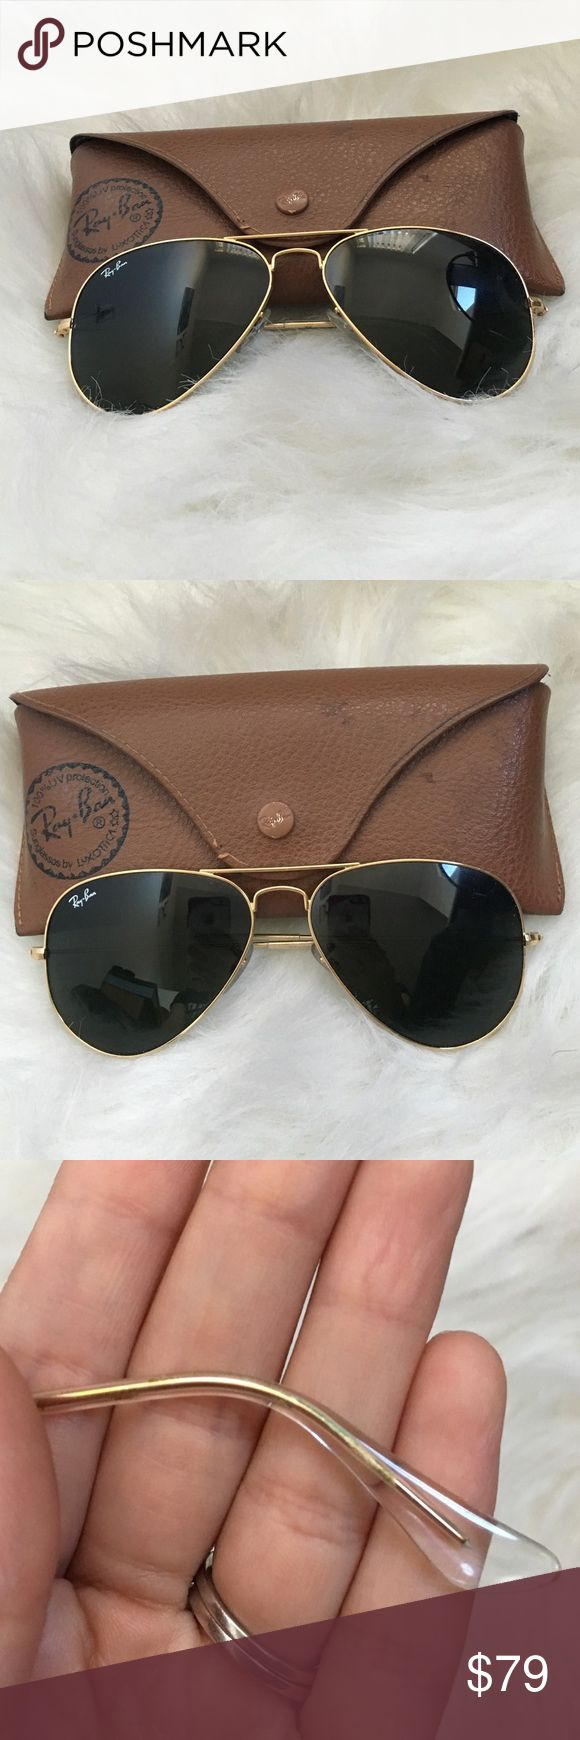 Ray-Bans Aviators Ray-Bans Aviators with leather case. Small defect on foot (pictured) not noticeable. Ray-Ban Accessories Glasses